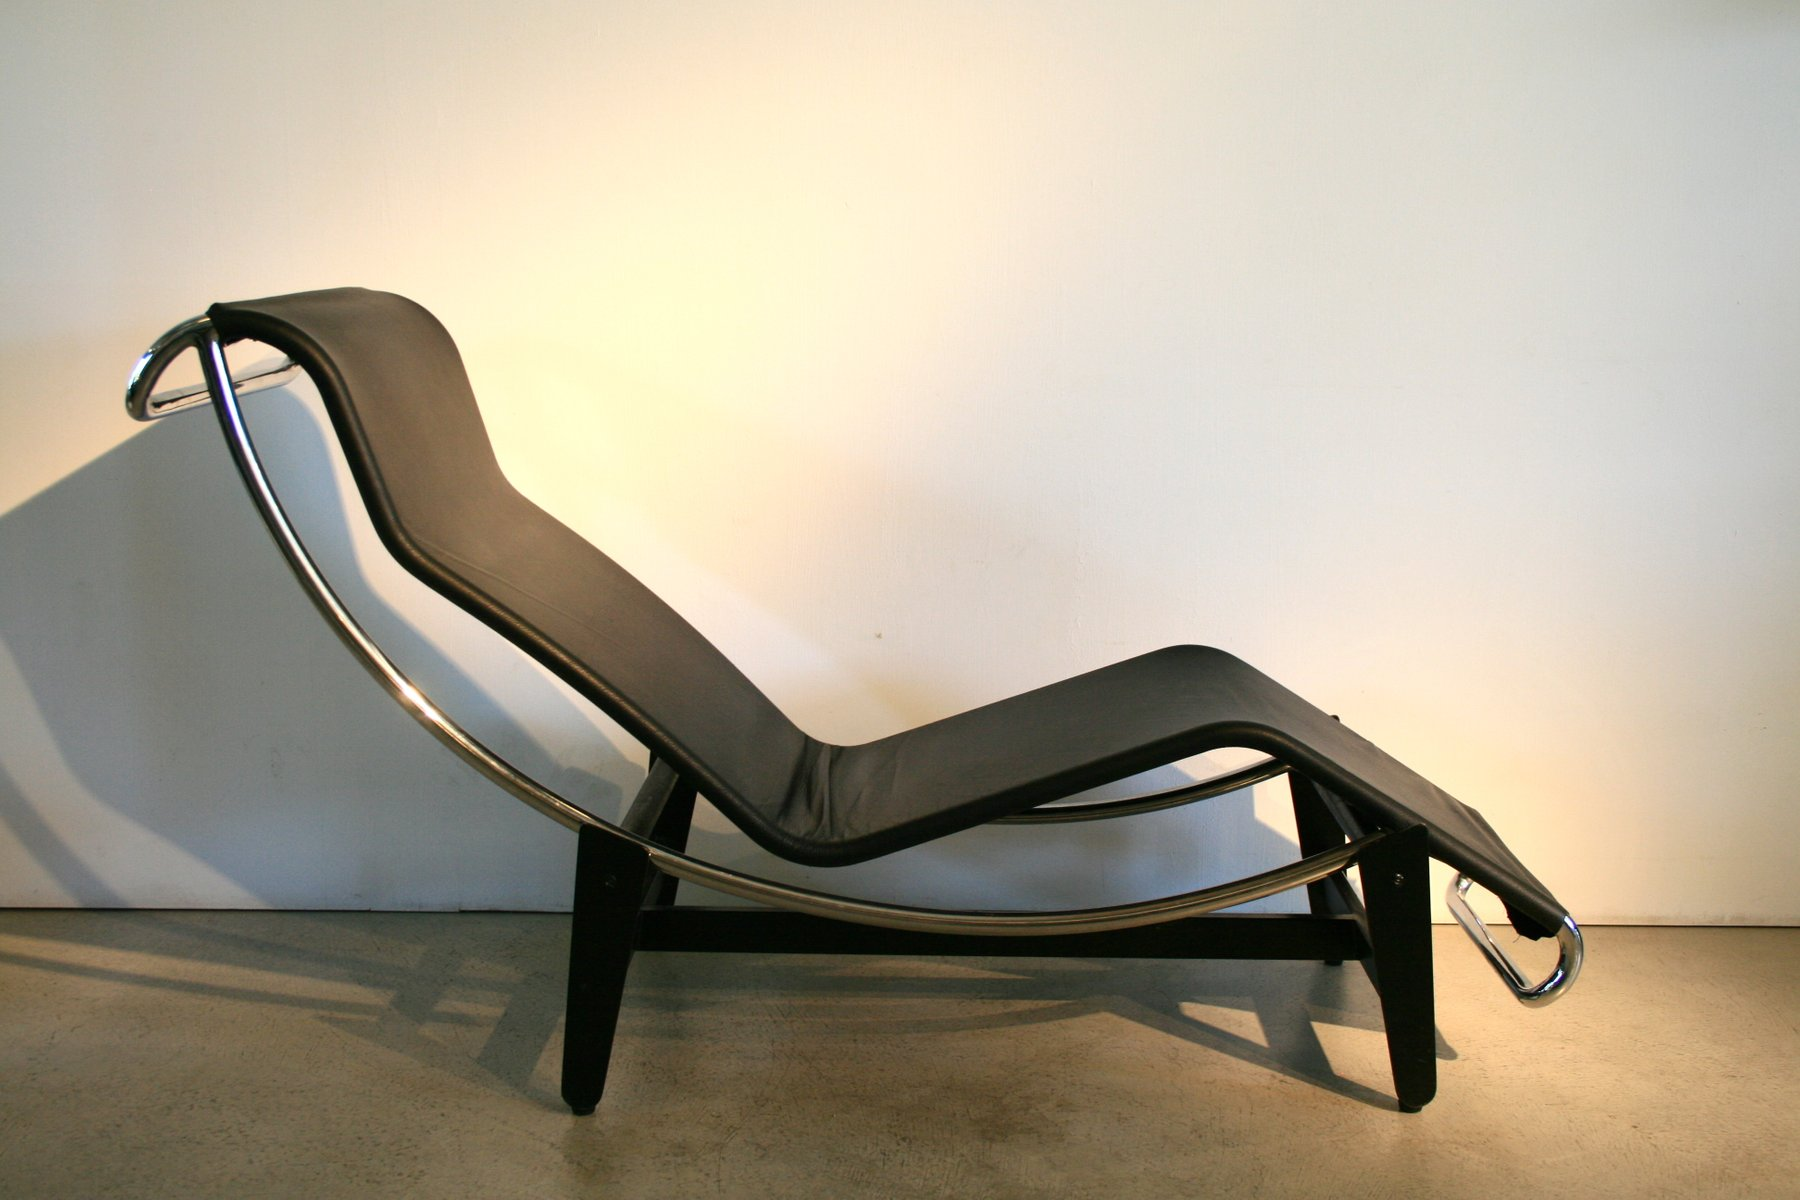 Vintage LC4 Lounge Chair by Le Corbusier for Wohnbedarf 1950s for